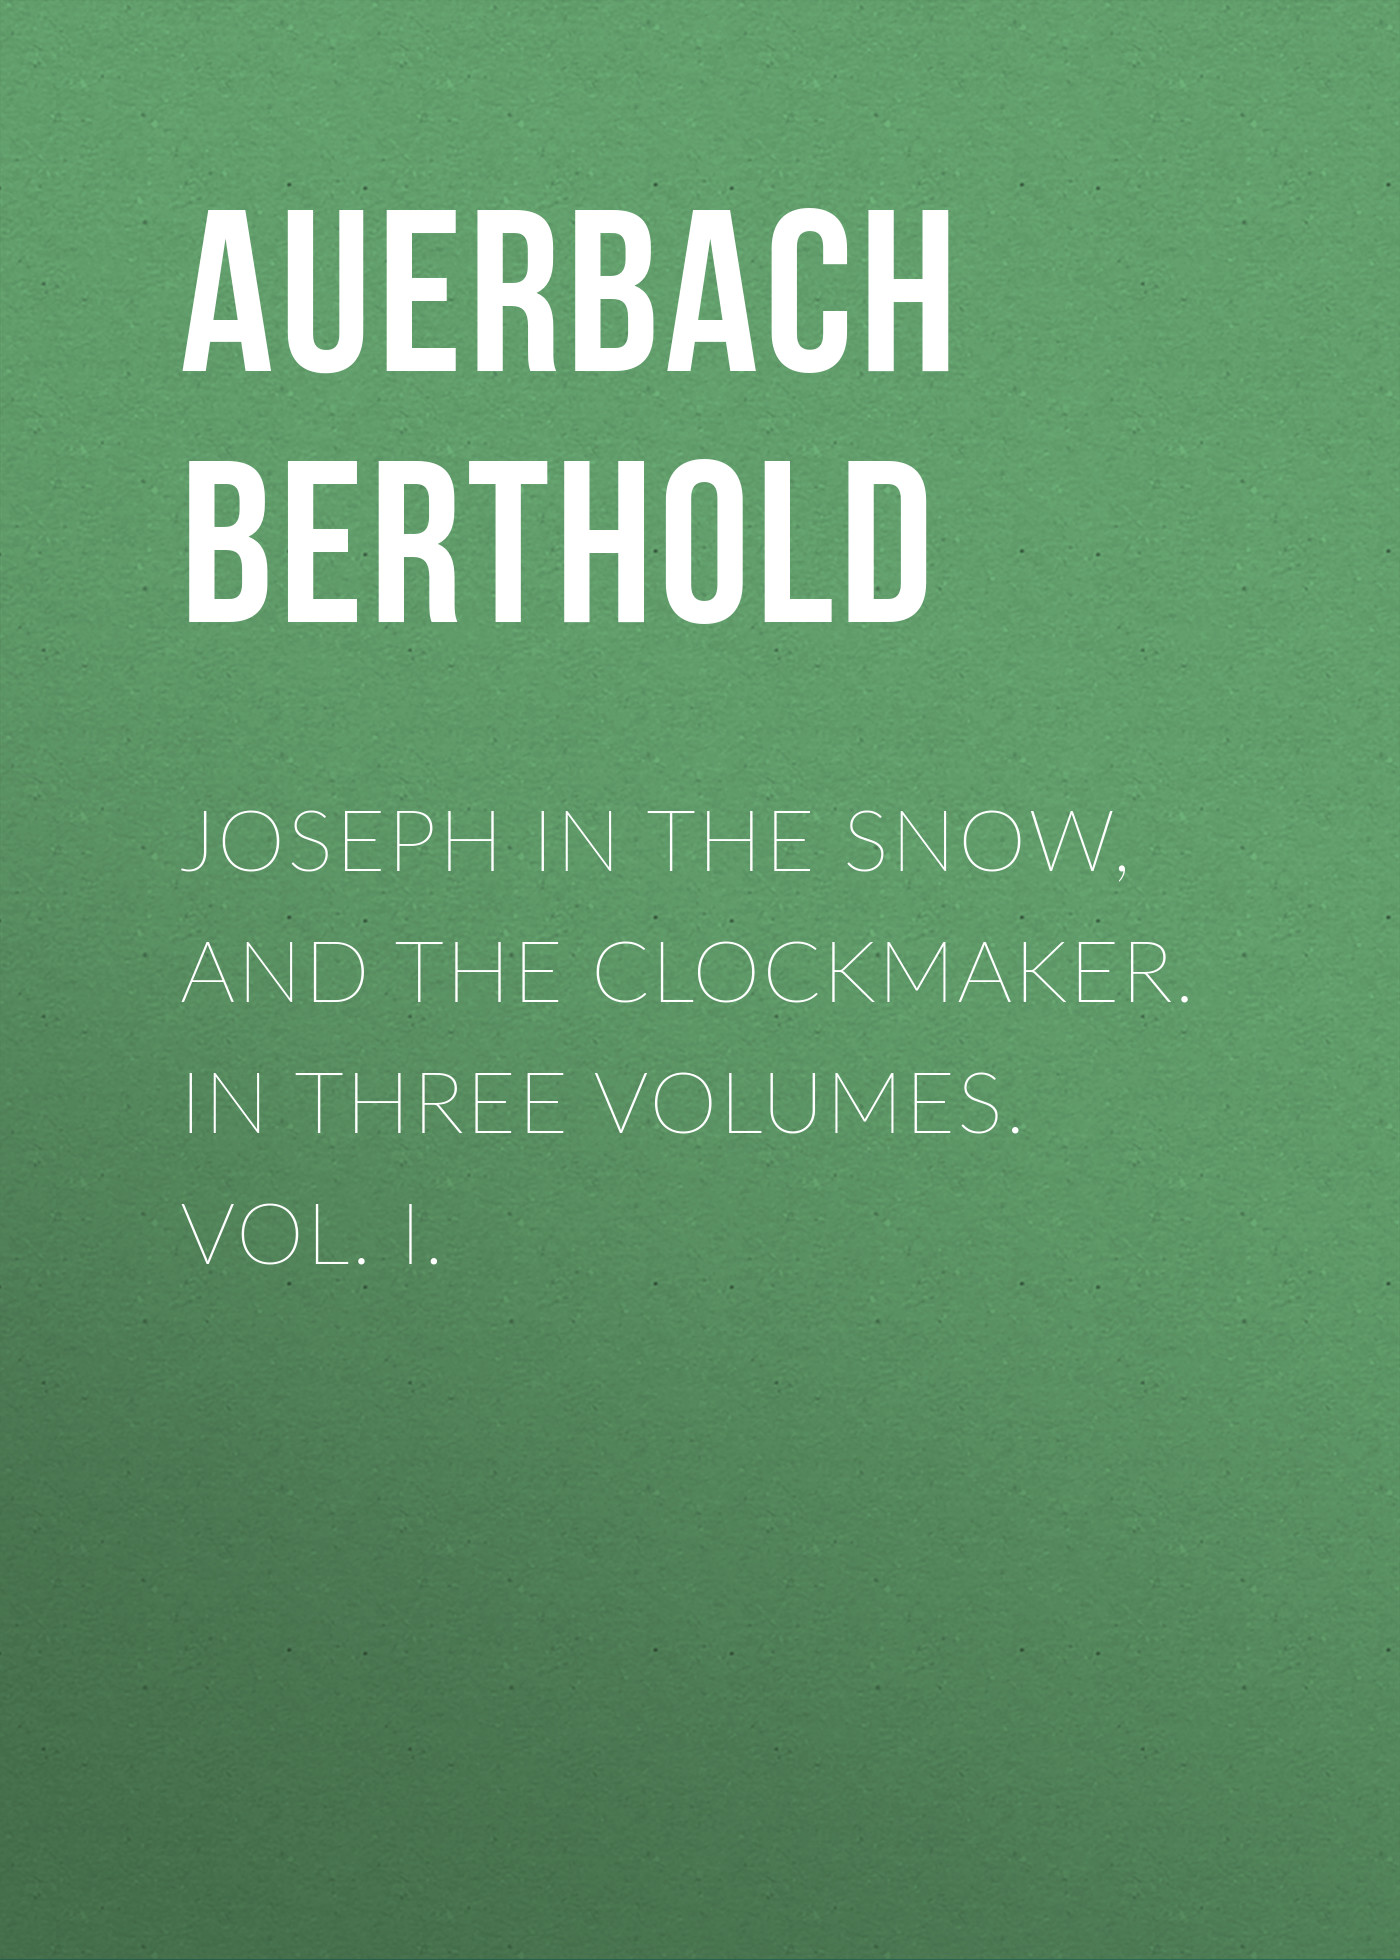 Auerbach Berthold Joseph in the Snow, and The Clockmaker. In Three Volumes. Vol. I.